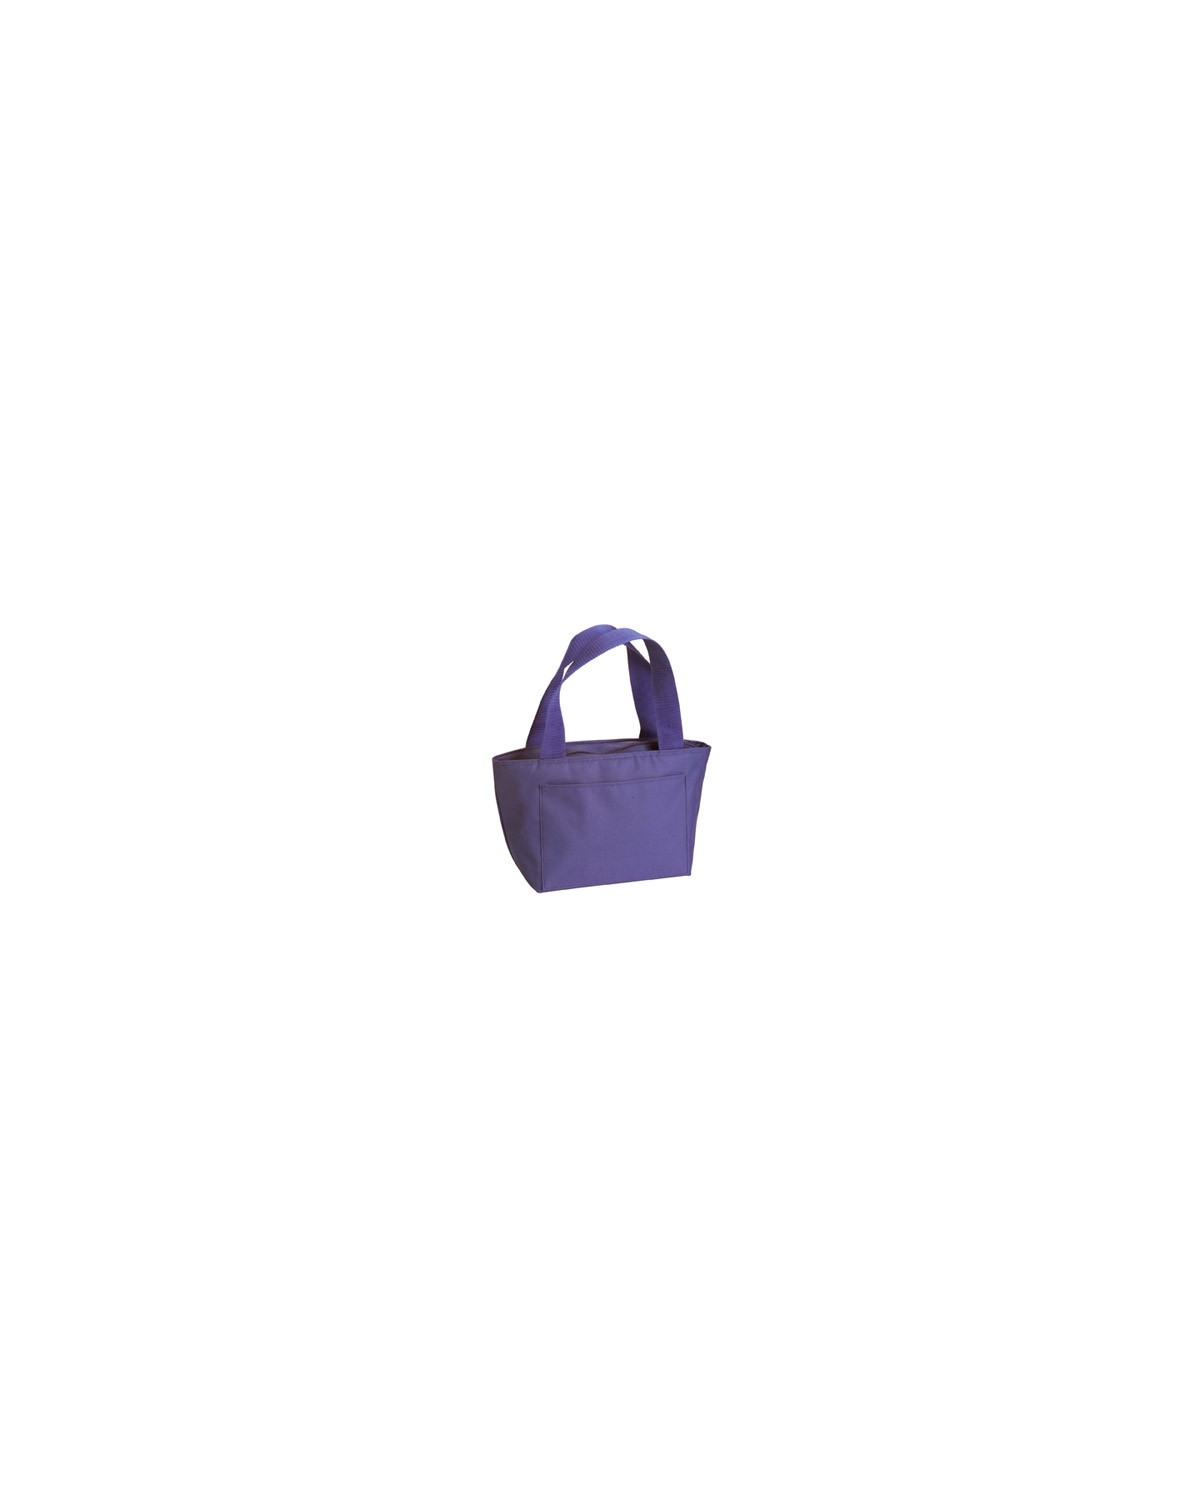 8808 Liberty Bags PURPLE